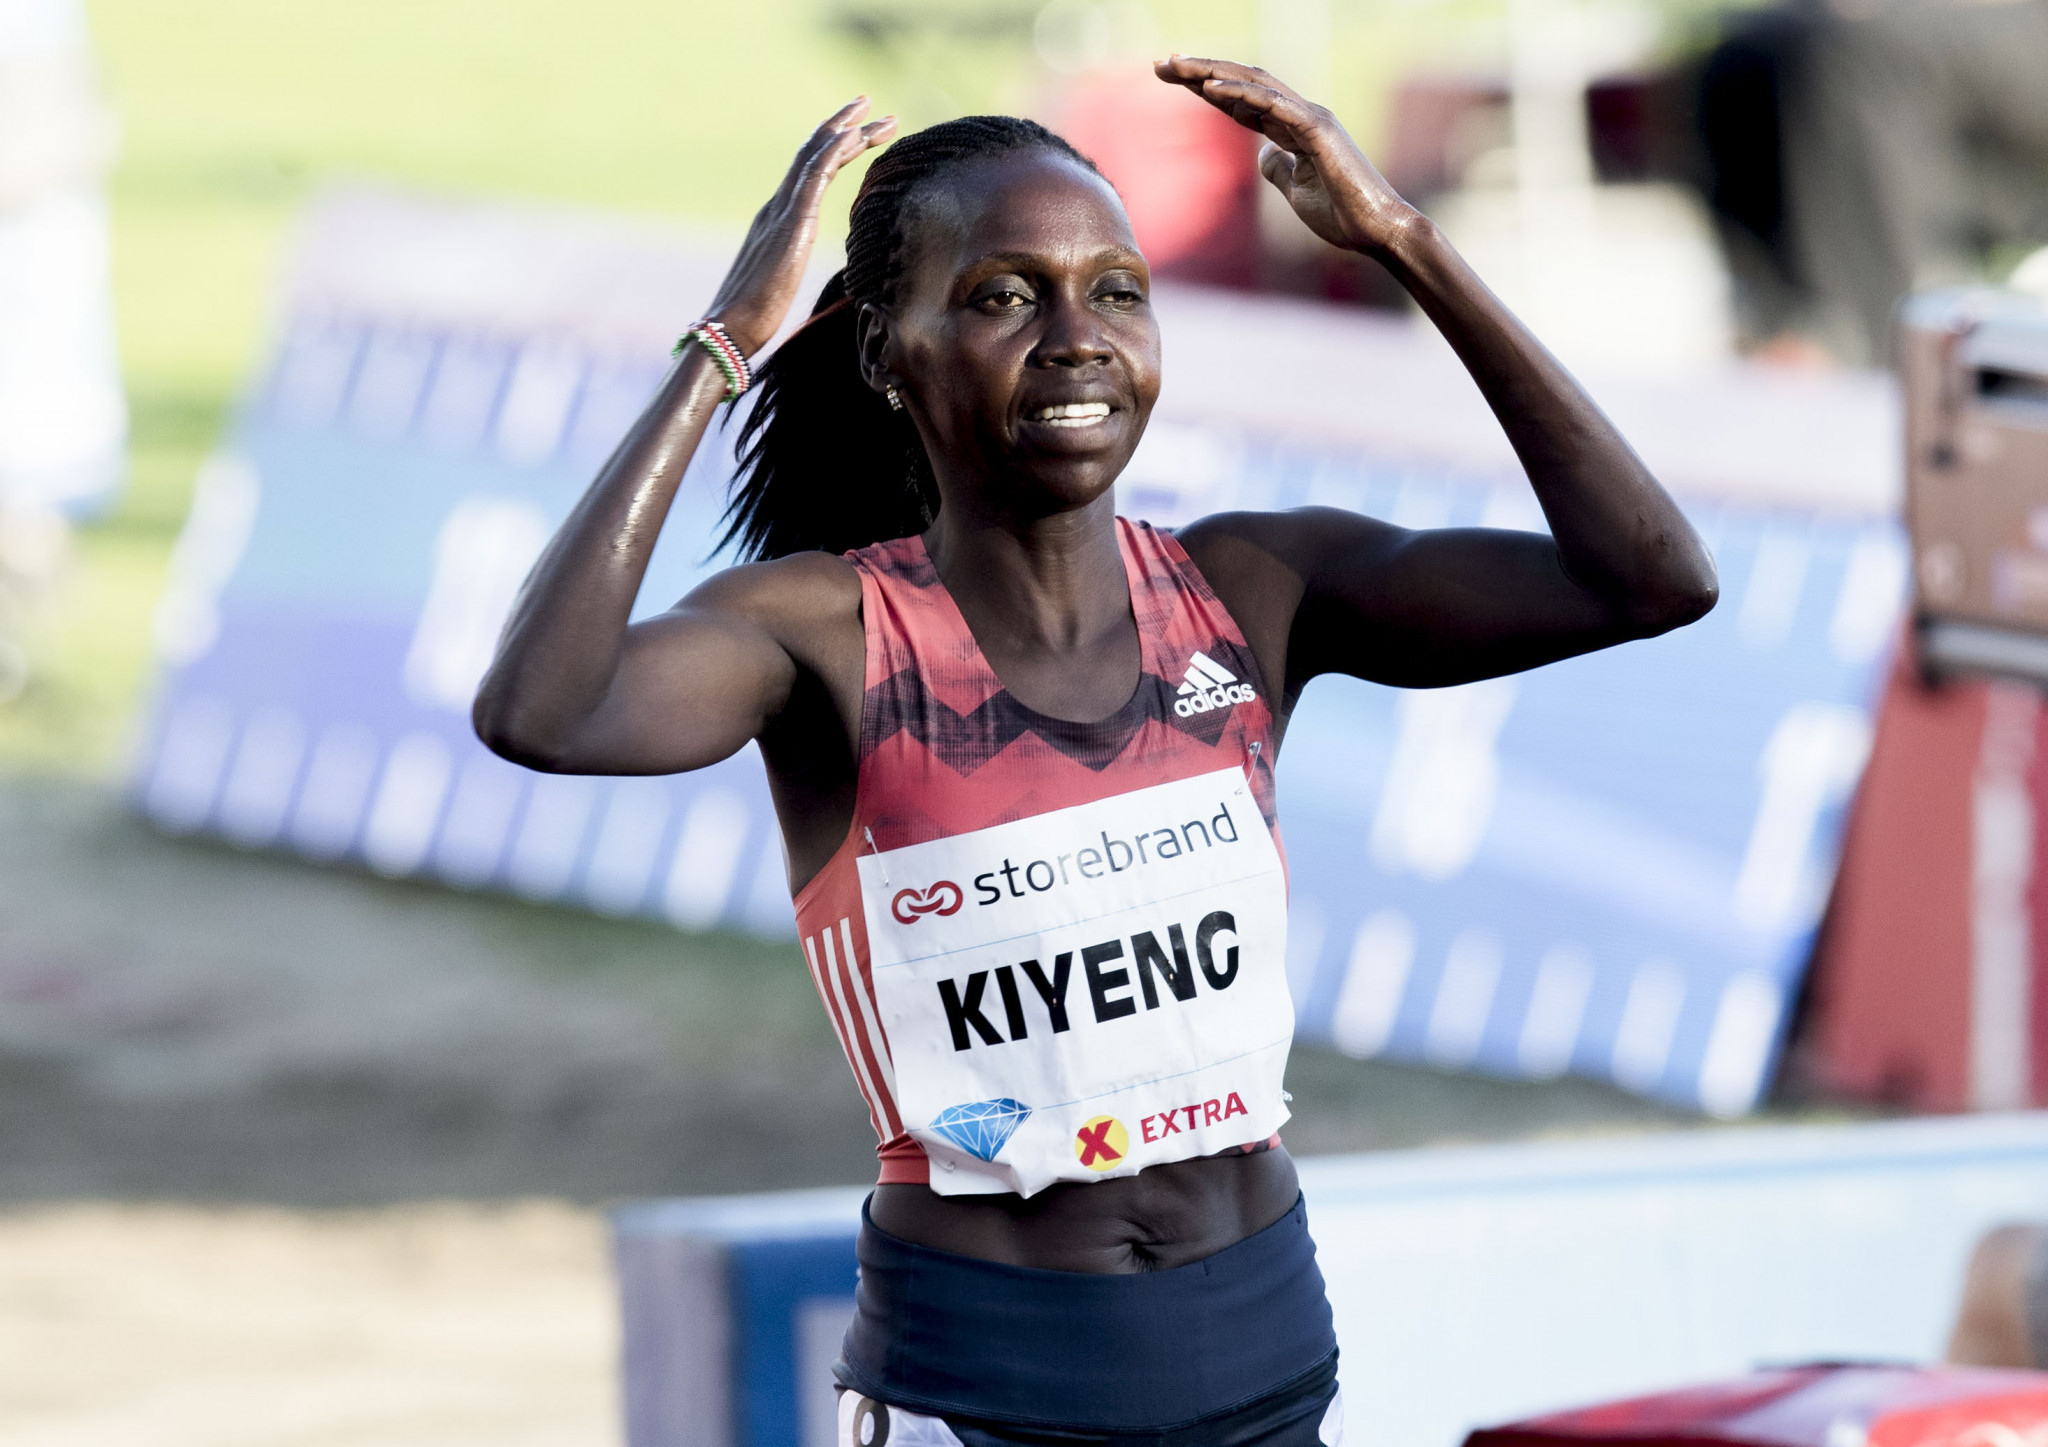 Former world 3,000 metres steeplechase champion Hyvin Kiyeng is one of three Kenyans to withdraw from Rabat 2019 to focus on the IAAF Diamond League event next week in Zurich ©Getty Images